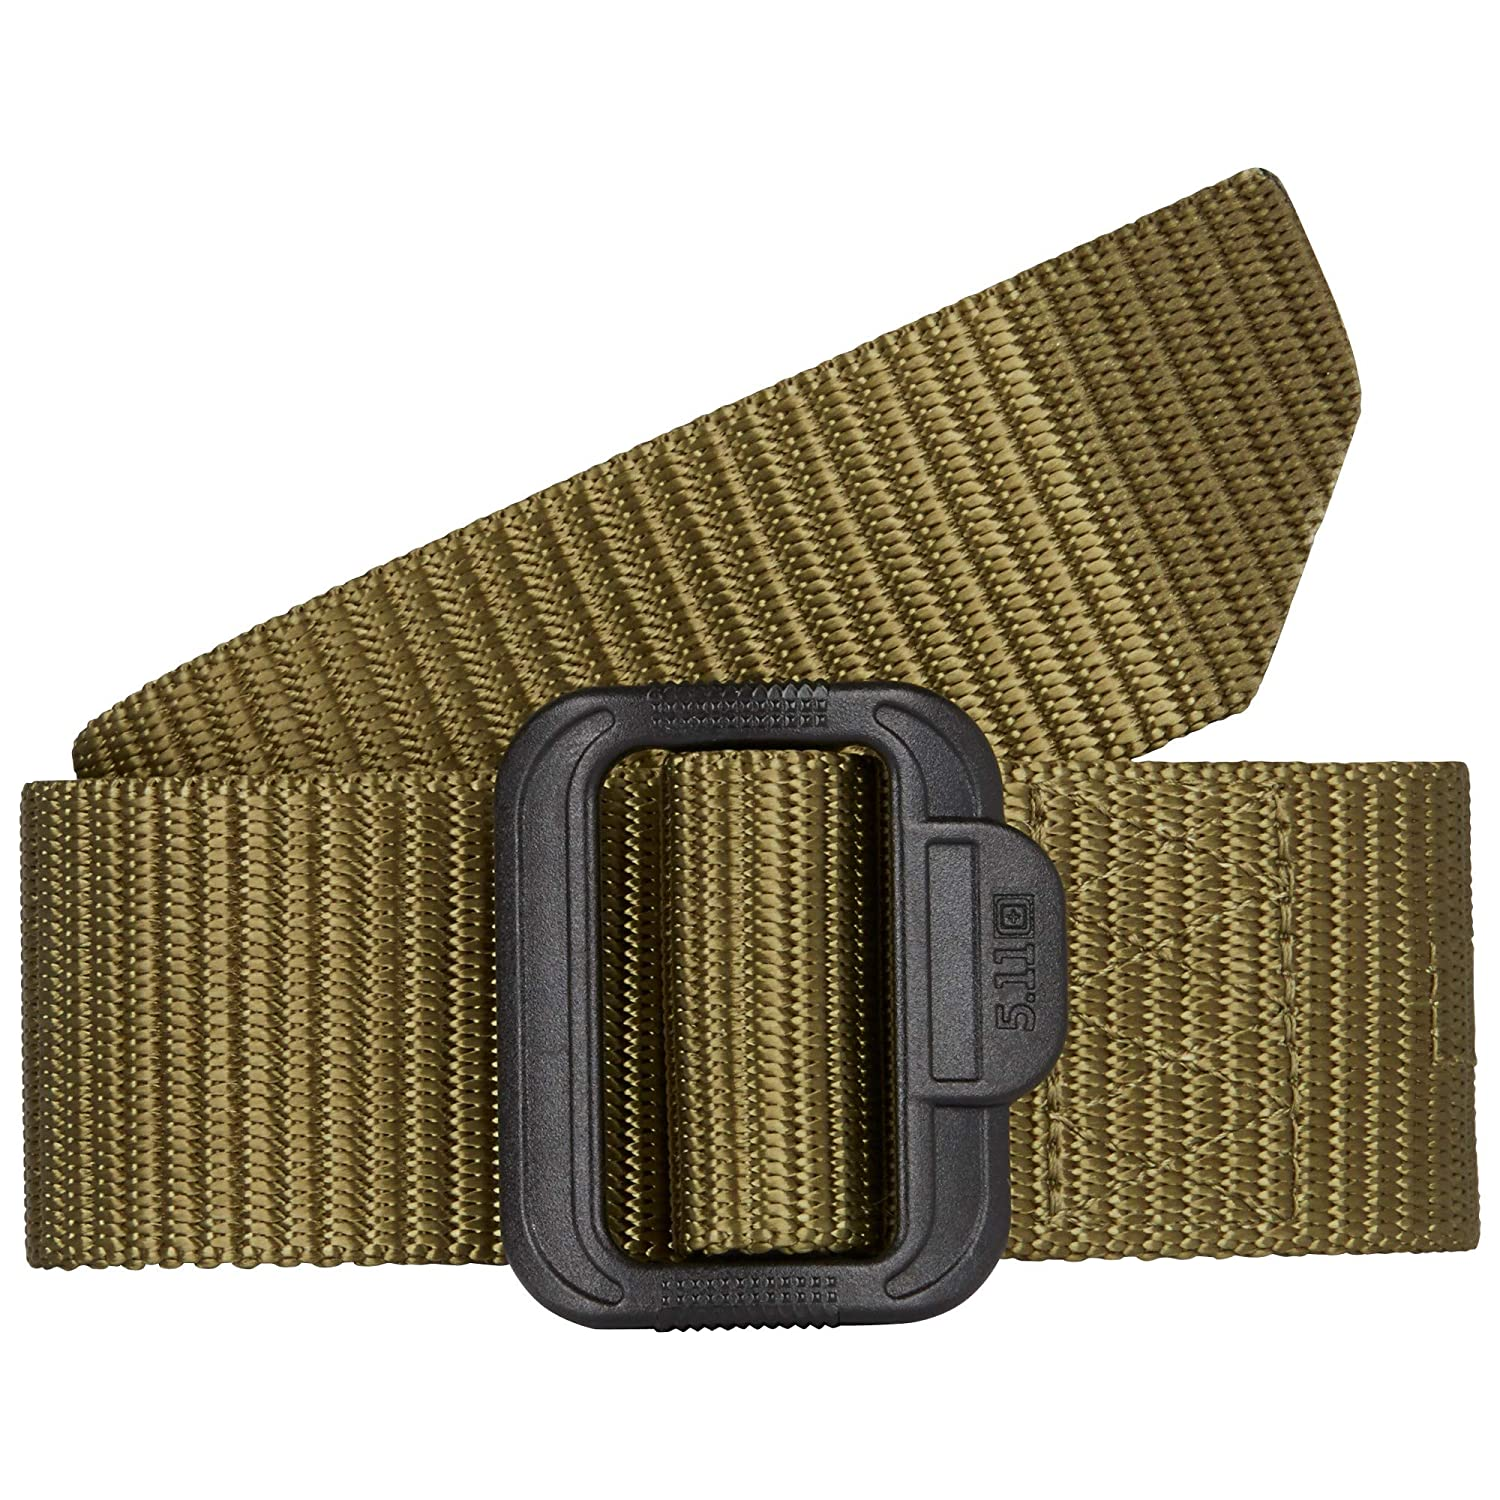 67410b1ca932 Amazon.com   5.11 TDU 1.75-Inch Belt   Hunting Safety Belts And Harnesses    Sports   Outdoors